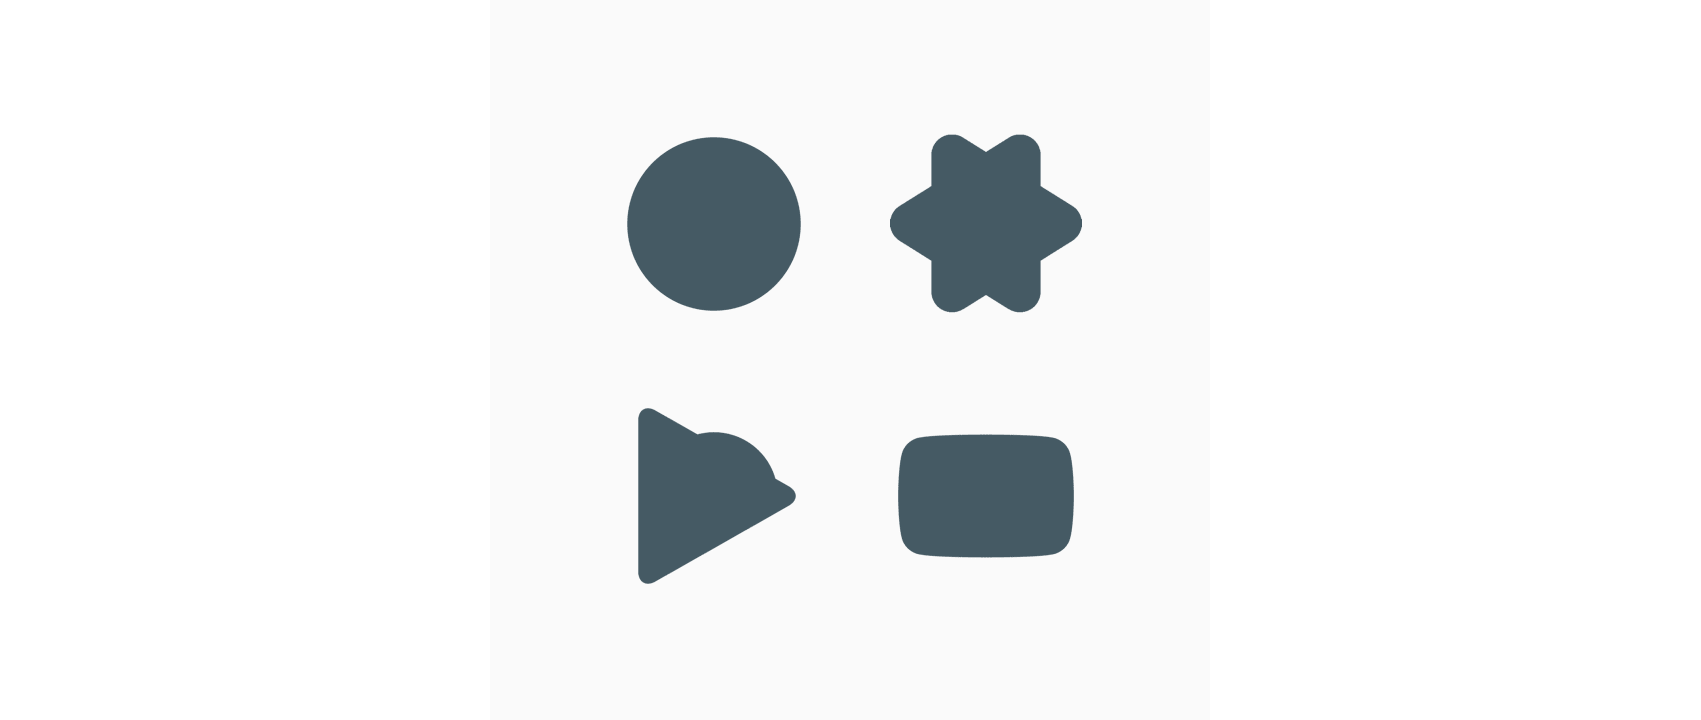 source: Google Play icon design specifications